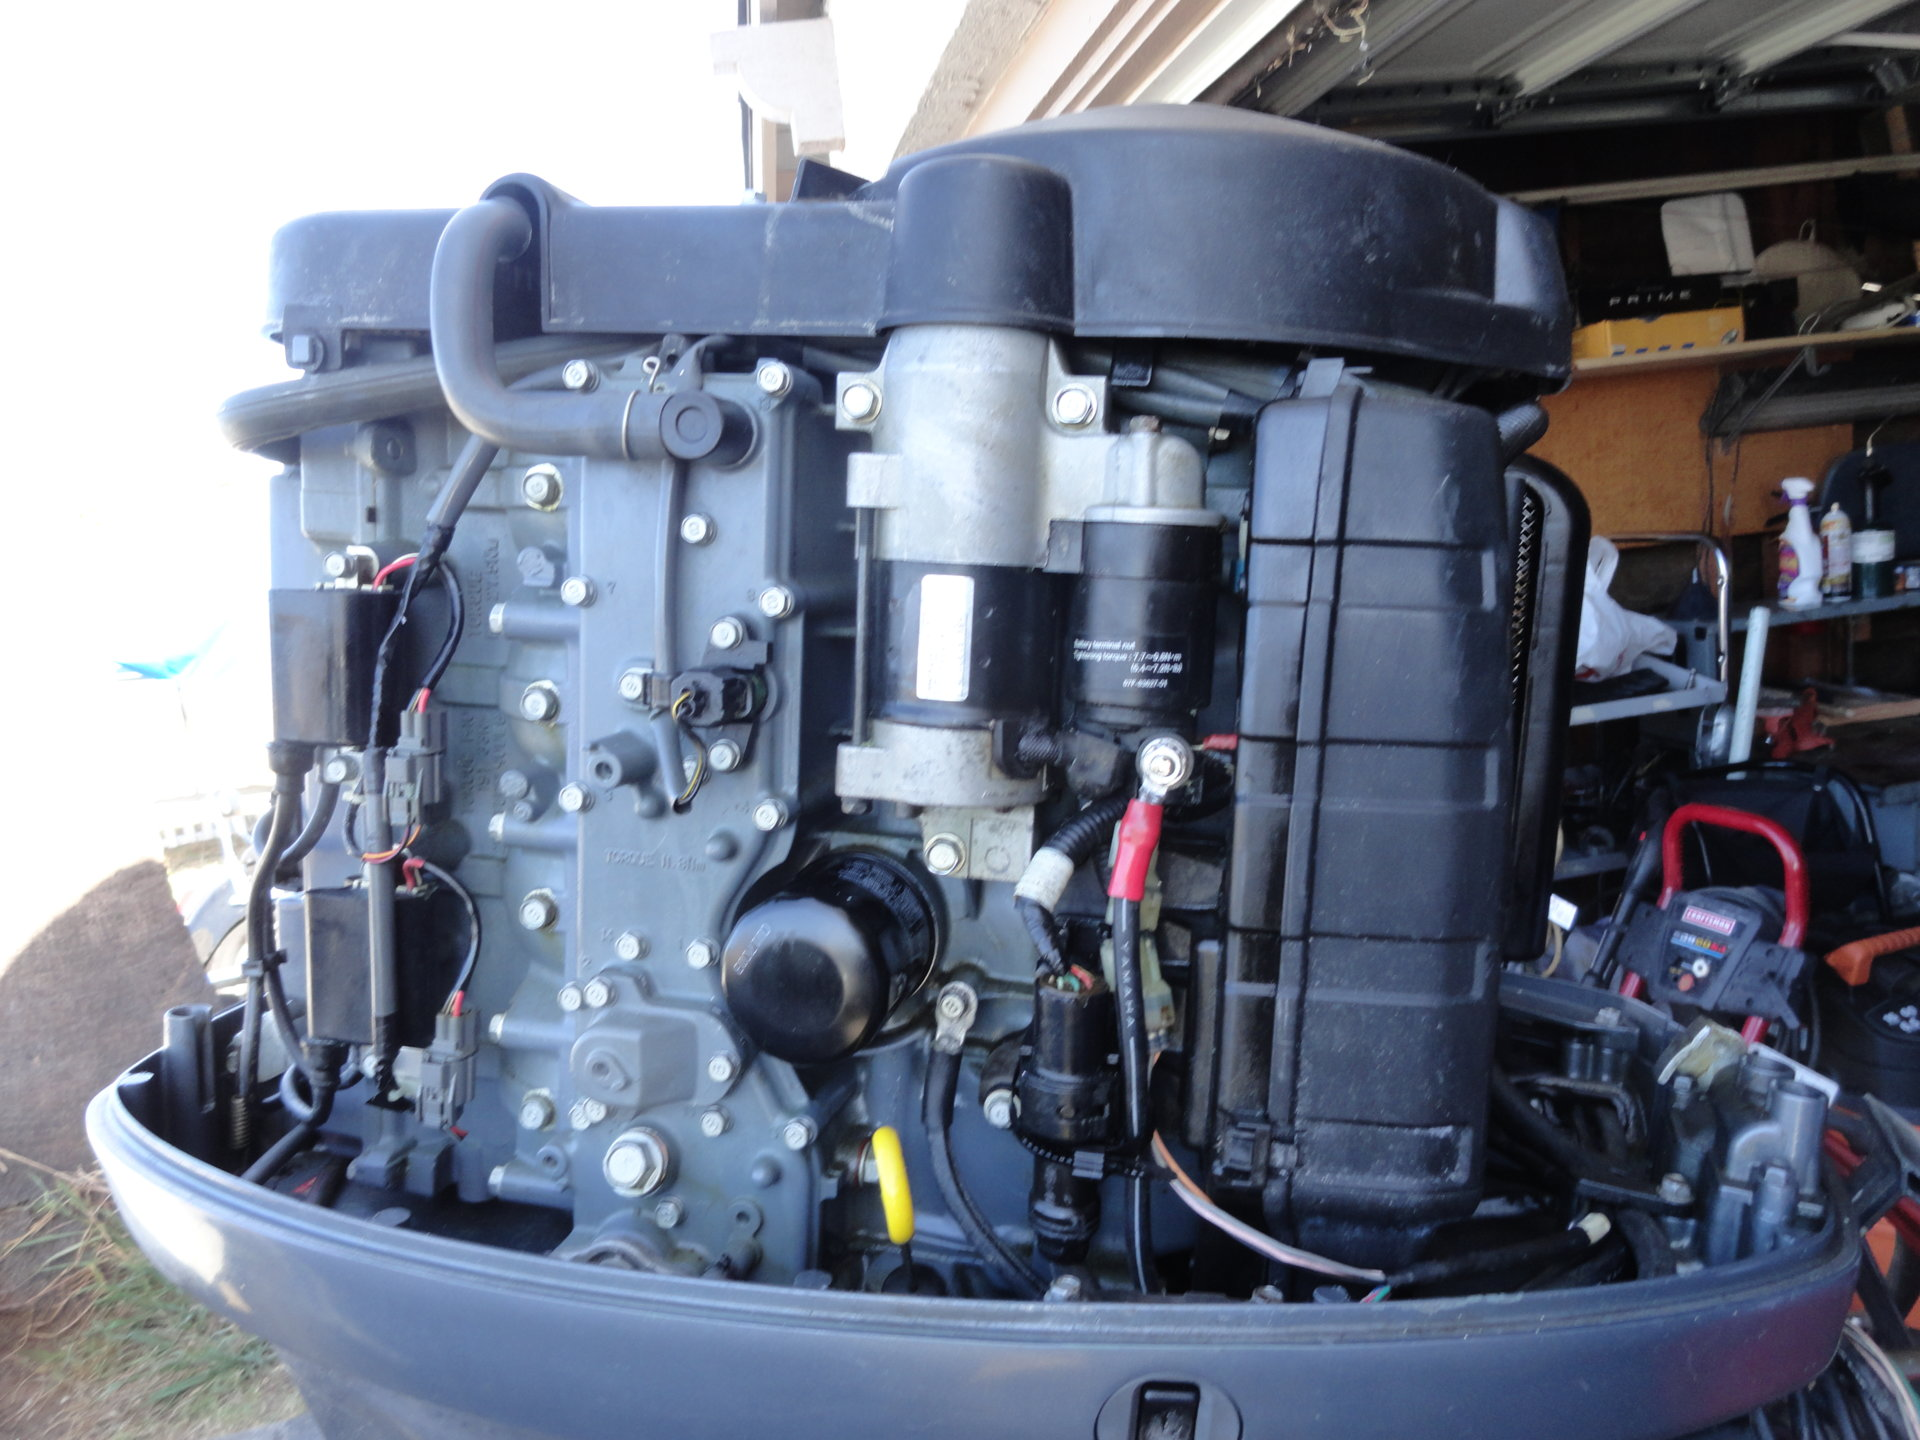 yamaha f115 fourstroke outboard fuel injected   full